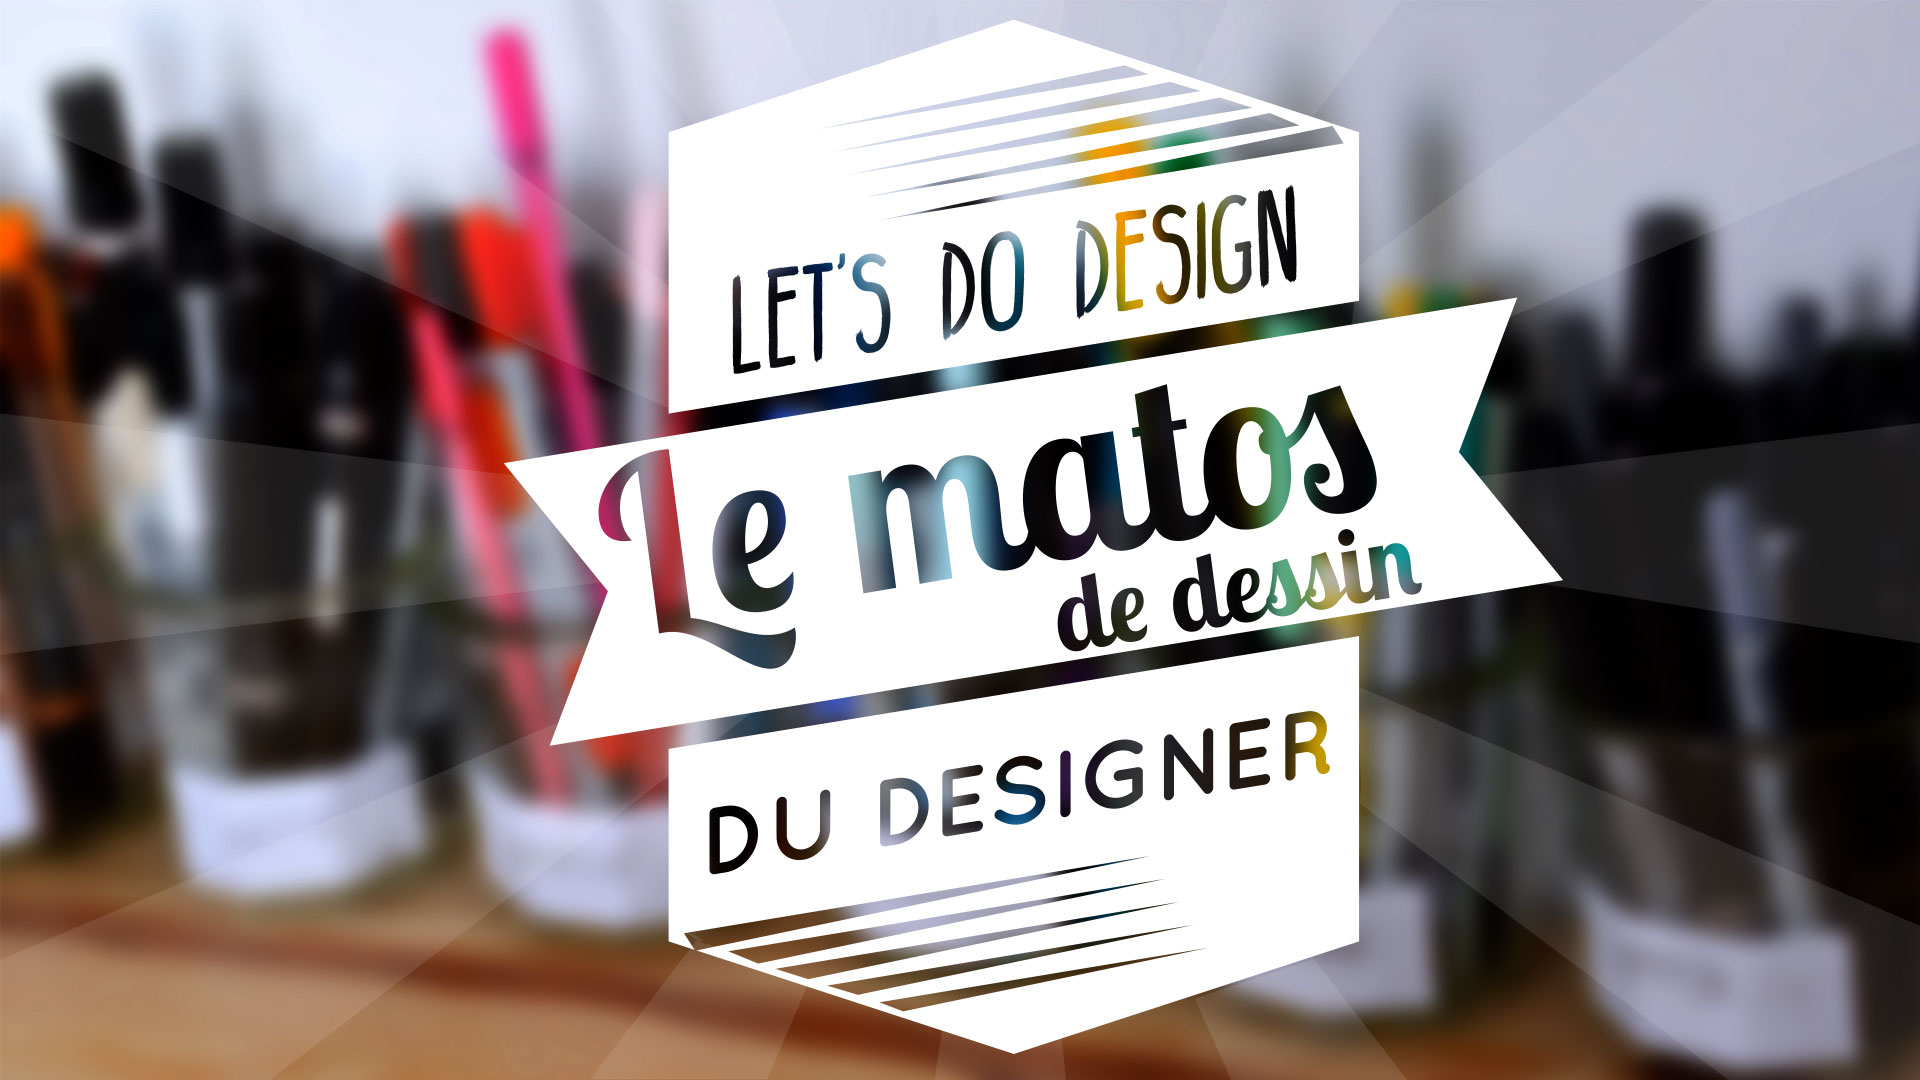 Let's do design ! Le matériel de dessin